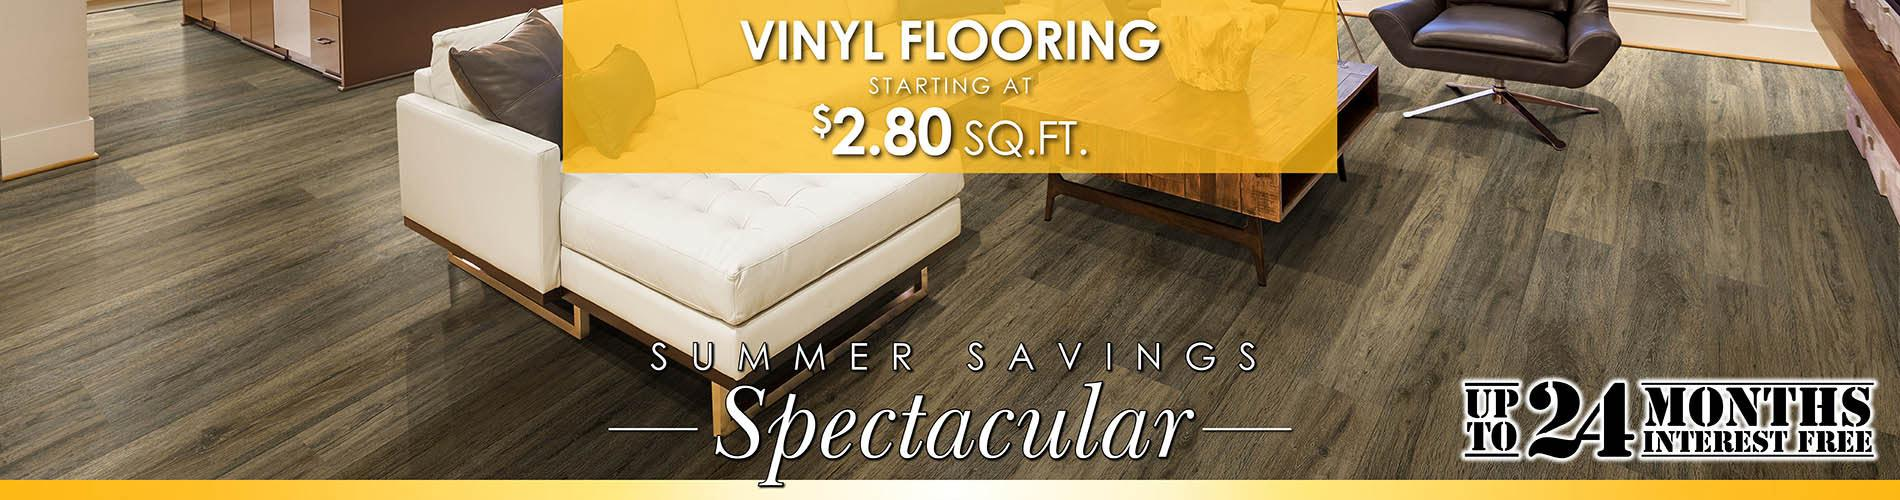 Vinyl flooring starting at $2.80 square foot during our Summer Savings Spectacular